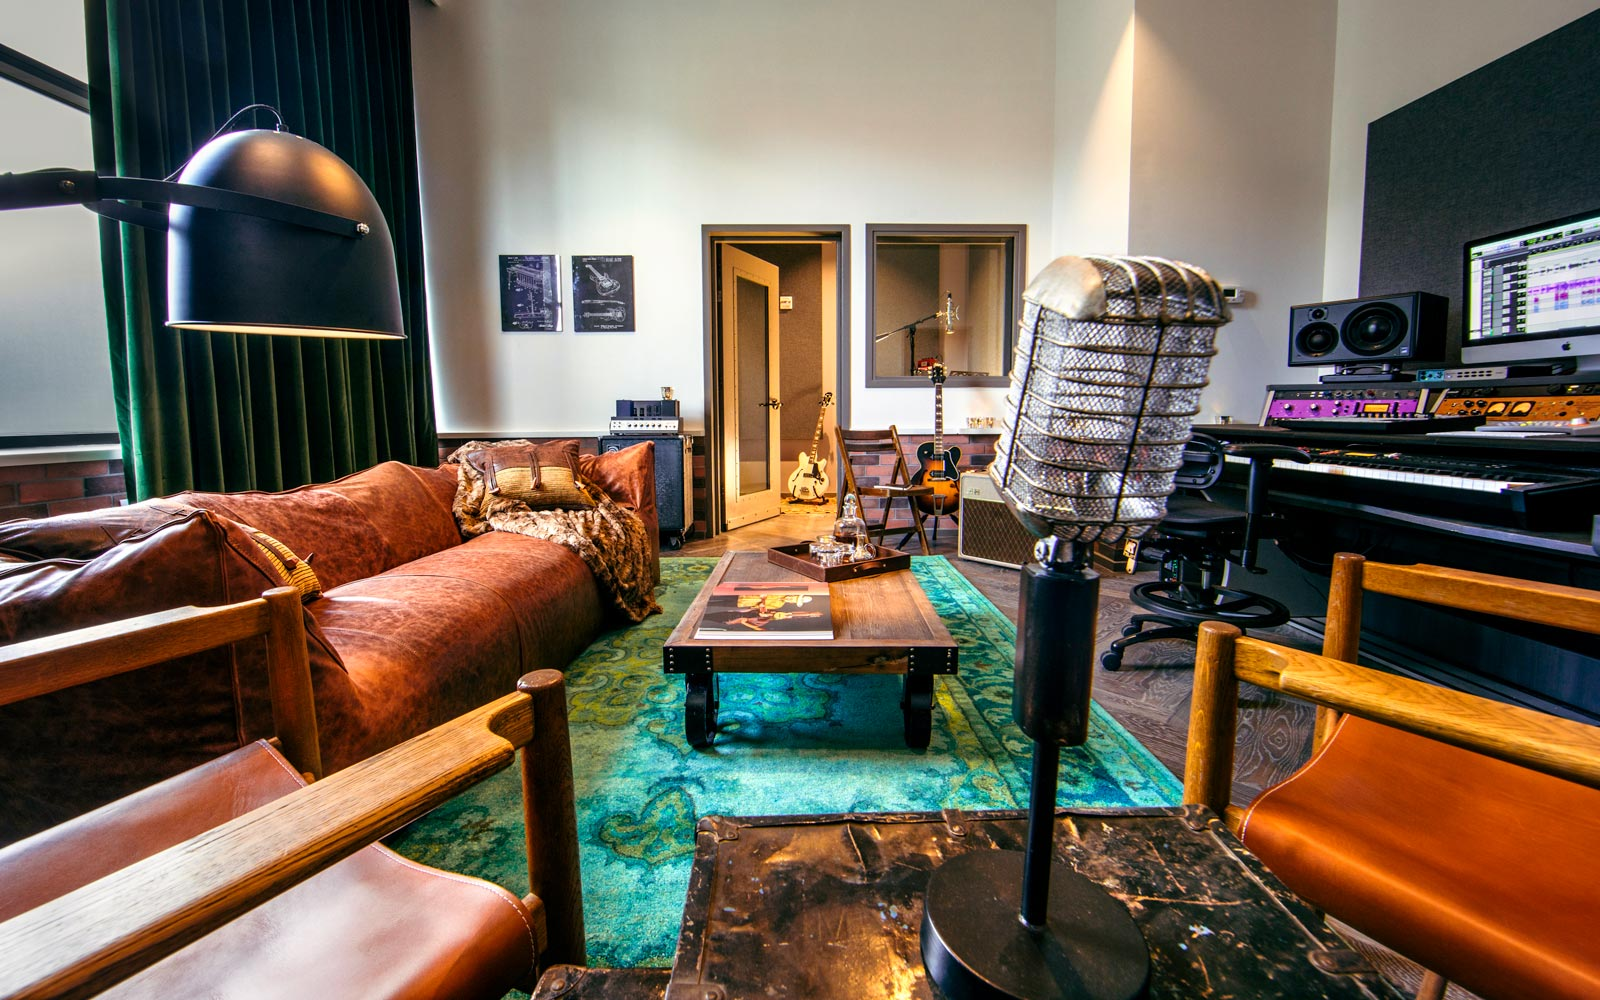 These hotels are catering to musicians with loaner guitars and recording studios